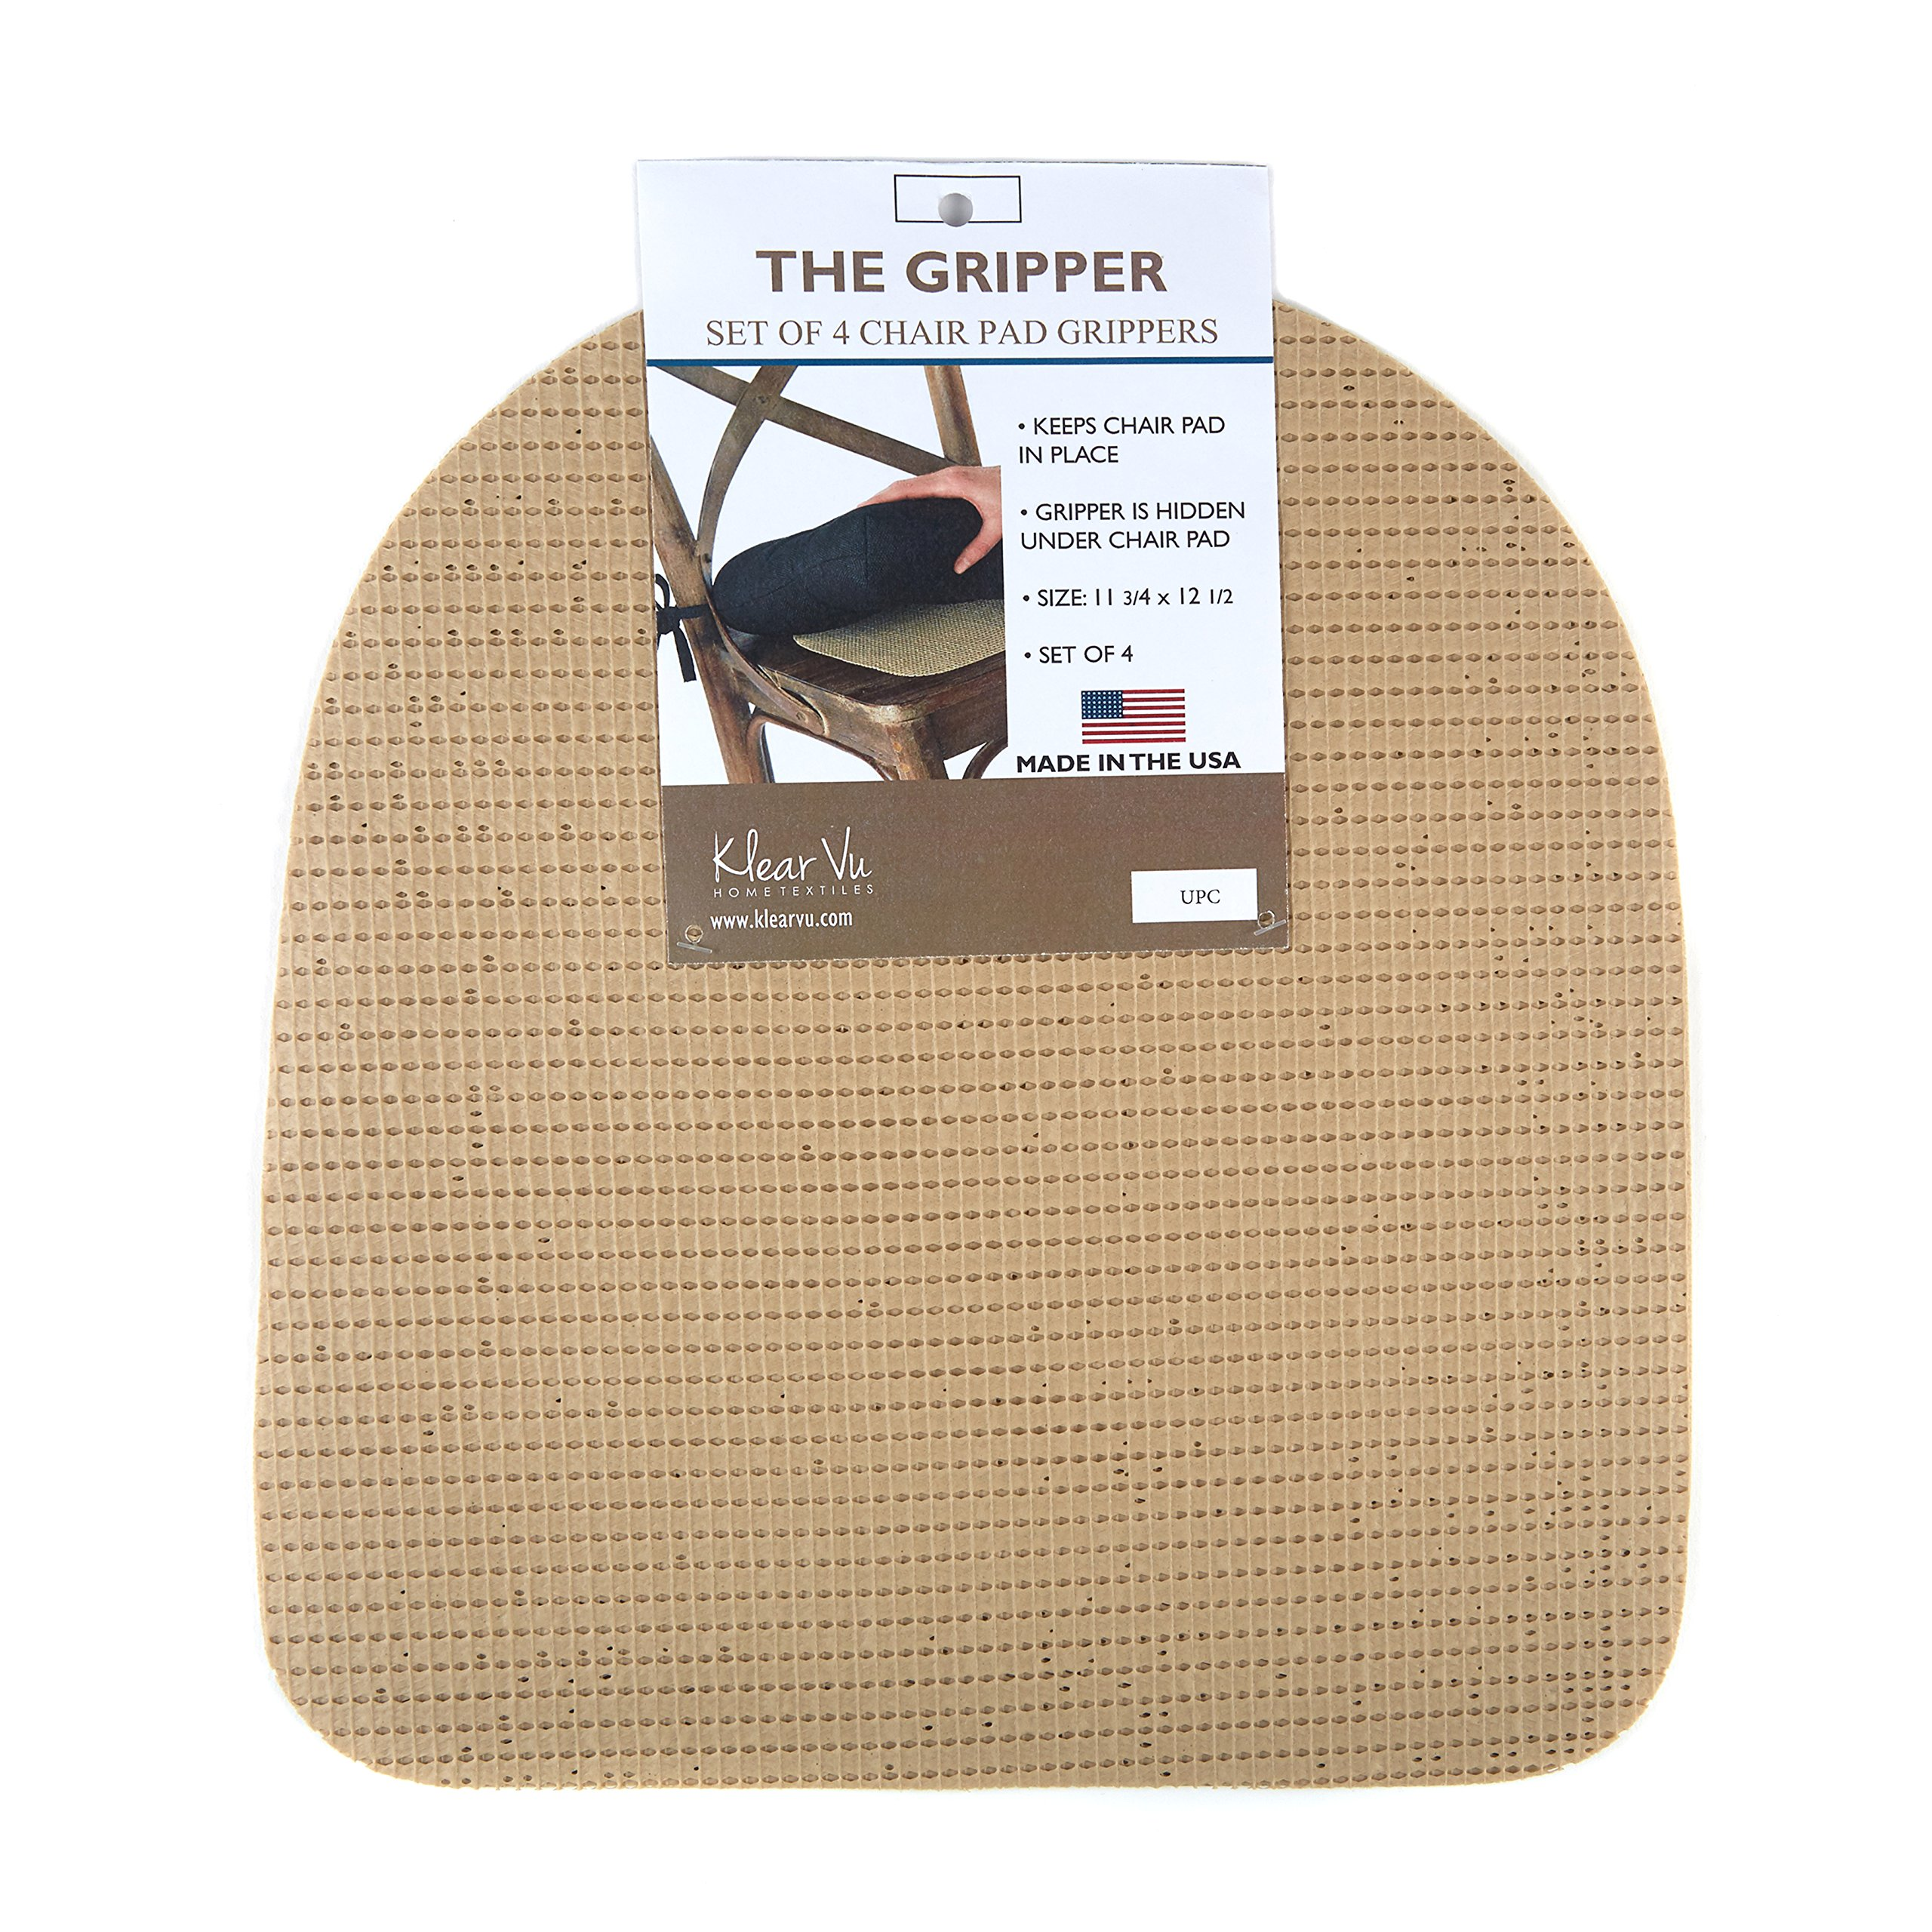 Beautiful The Gripper PK GRPR SKW PK Non Slip Gripper Pads For Chair Cushions, 12.5